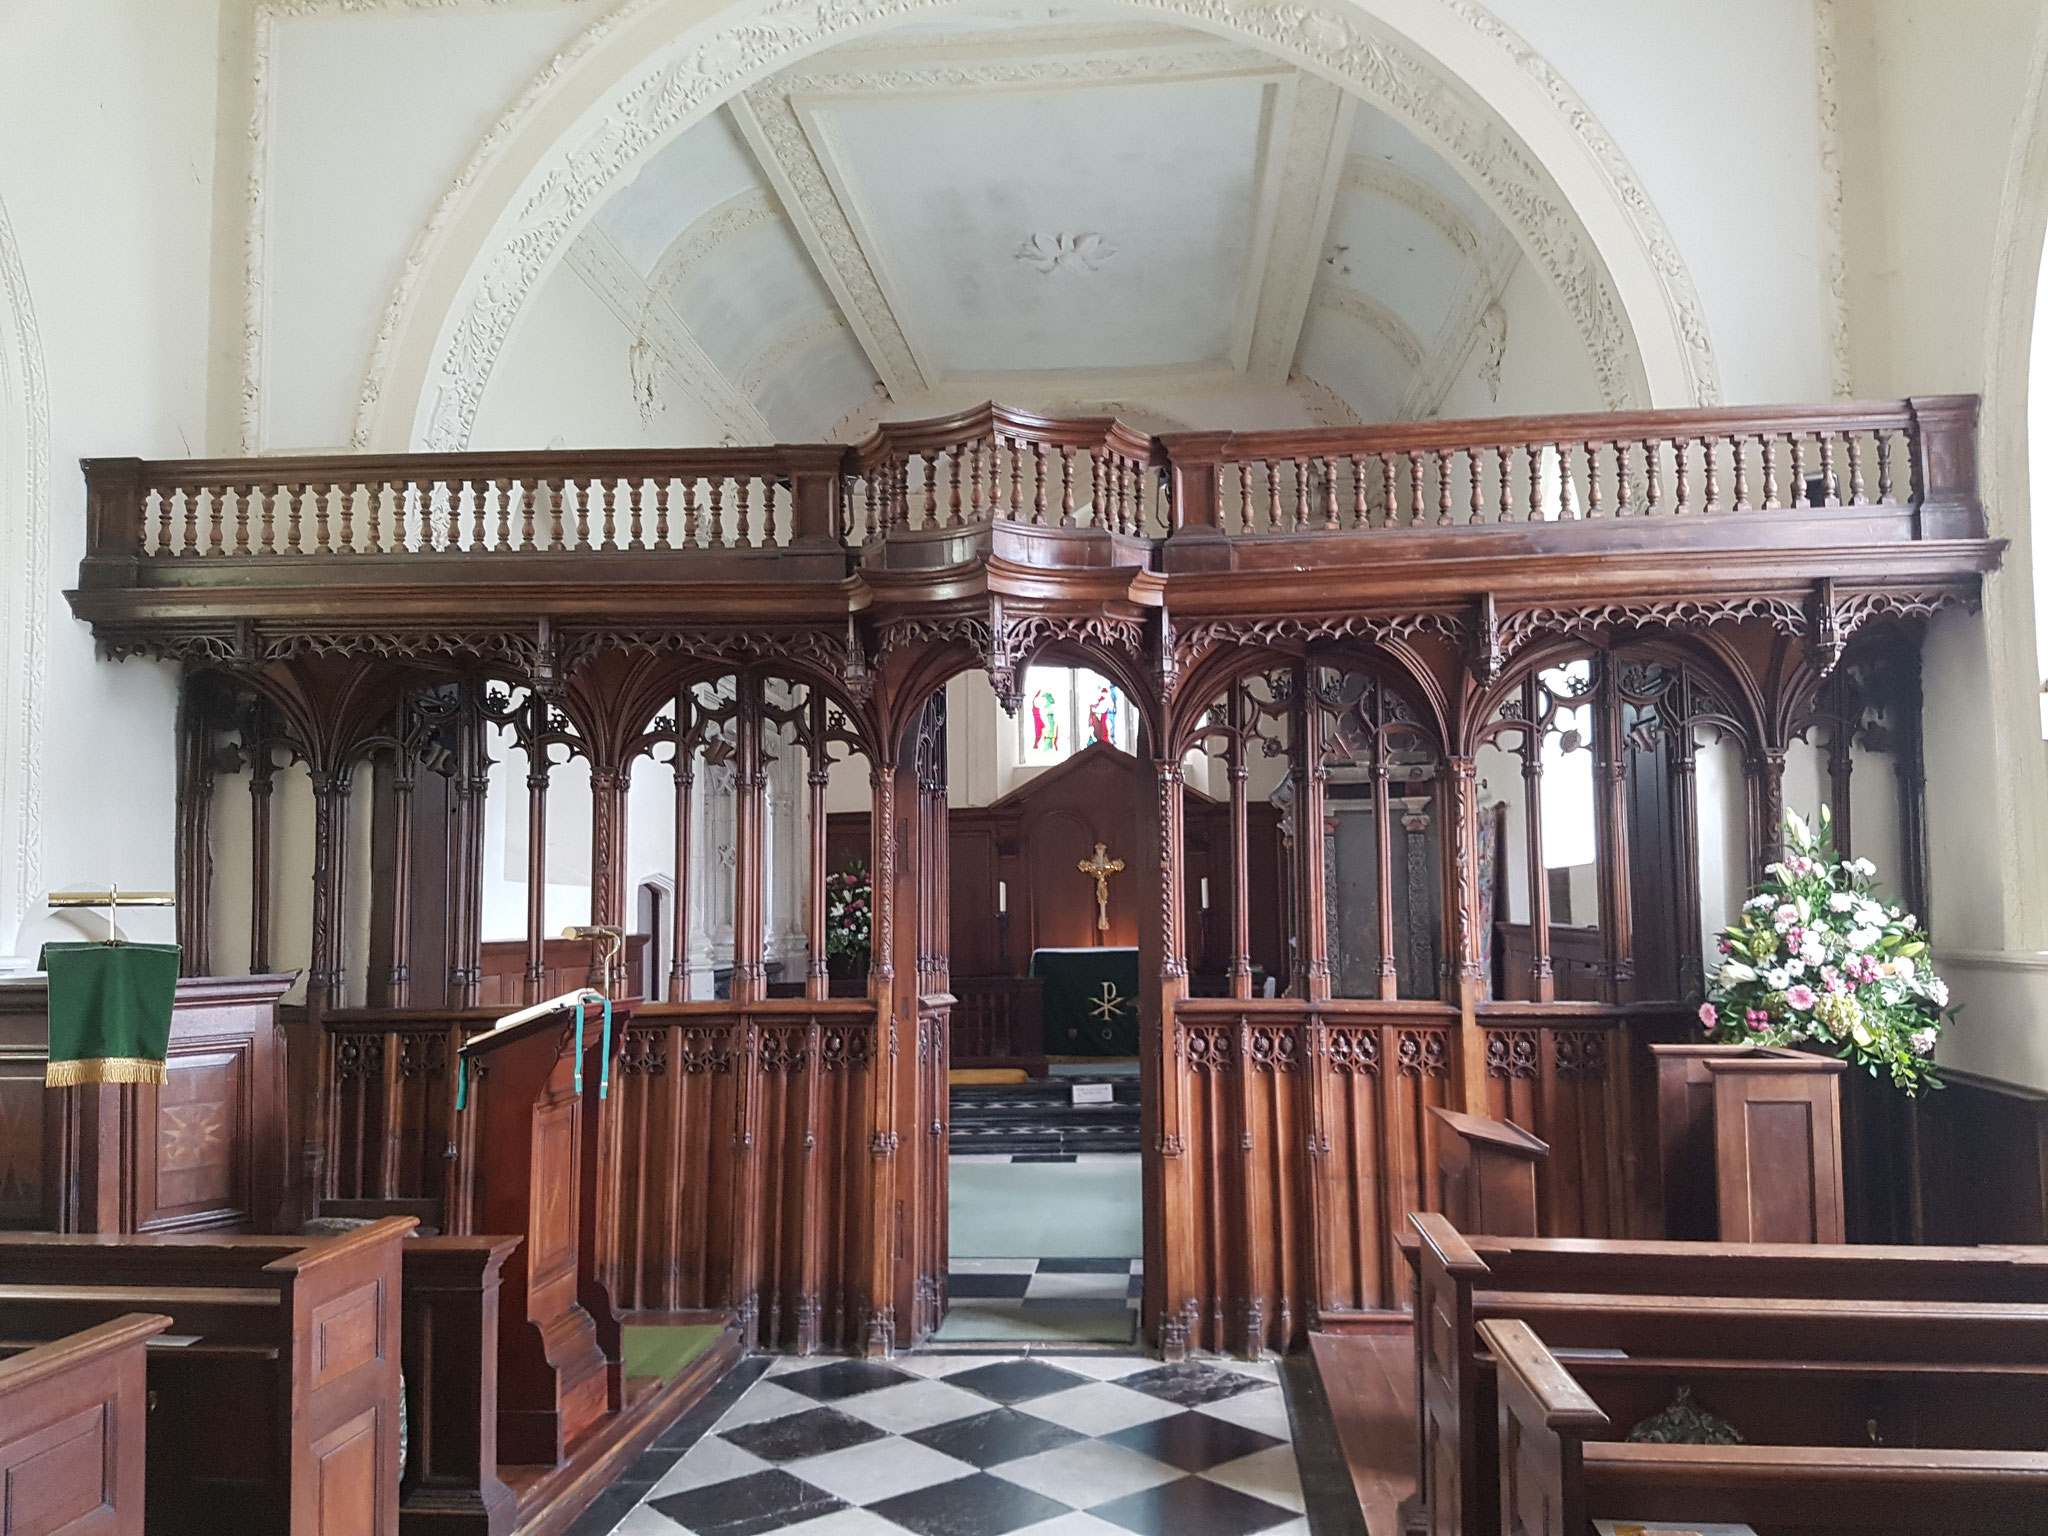 The 14th c church was transformed by Sir John Peche in the early Tudor period. The rood screen was created at that time.